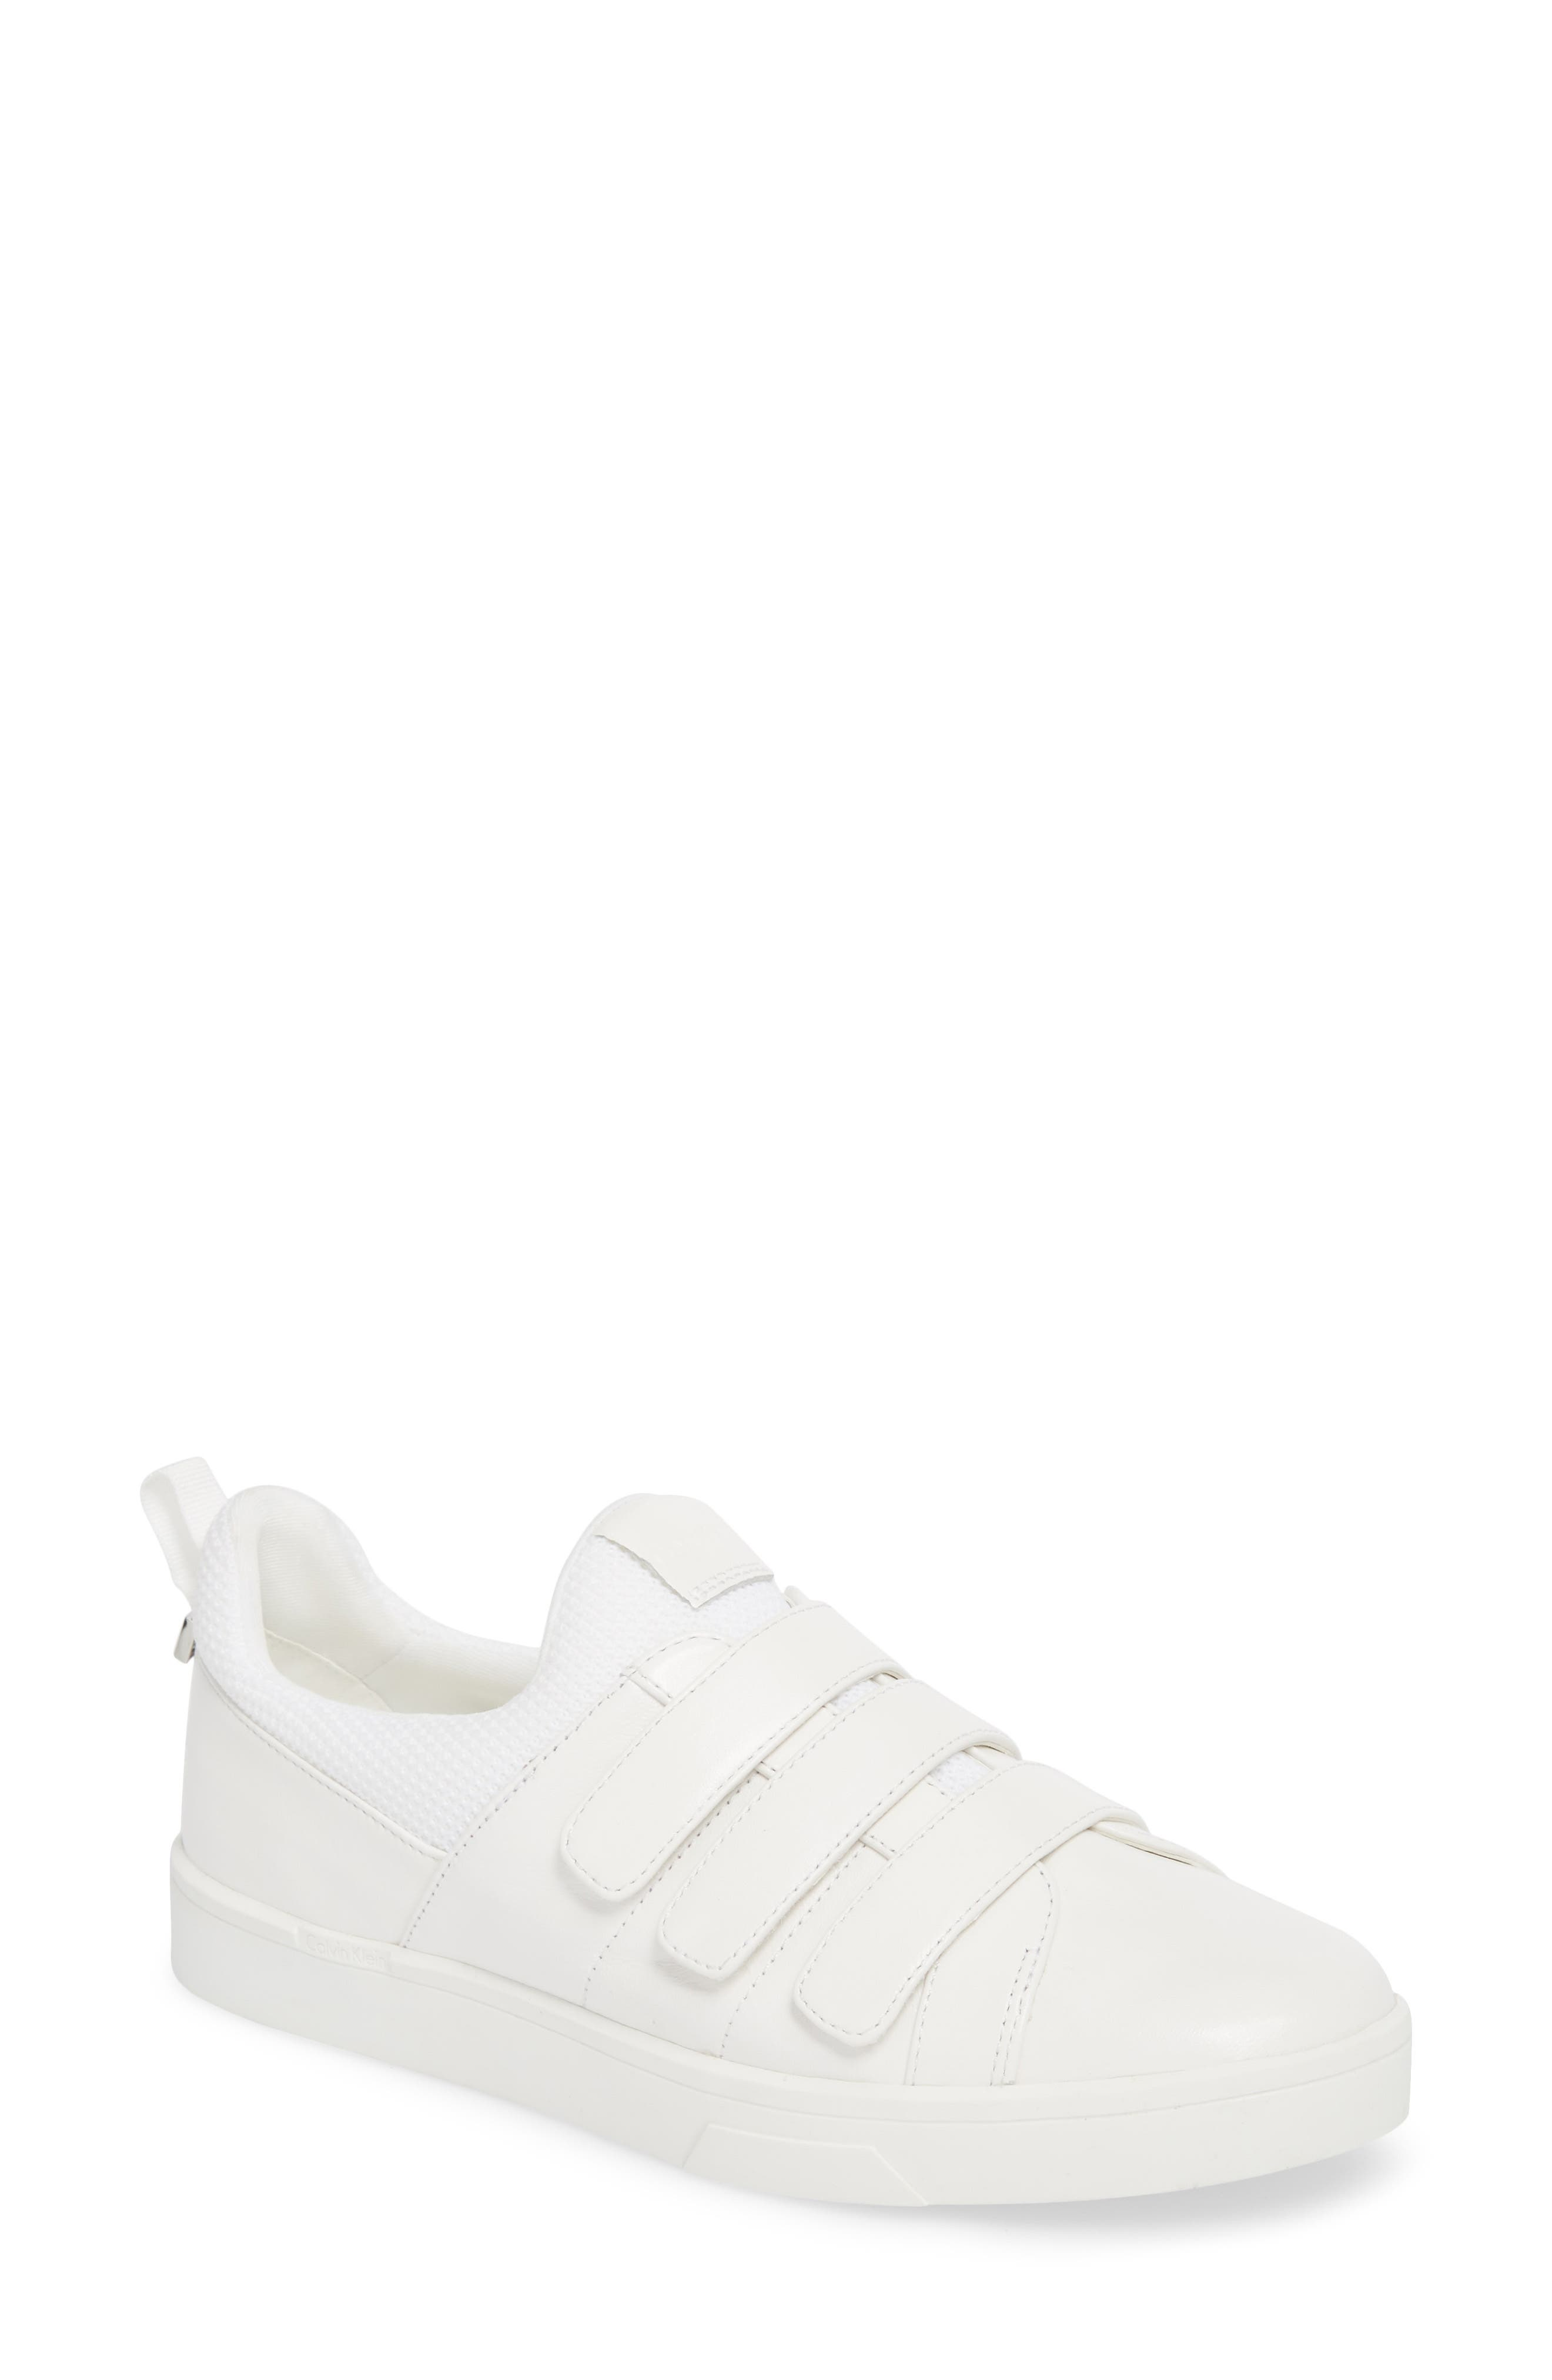 Irah Sneaker,                         Main,                         color, WHITE LEATHER